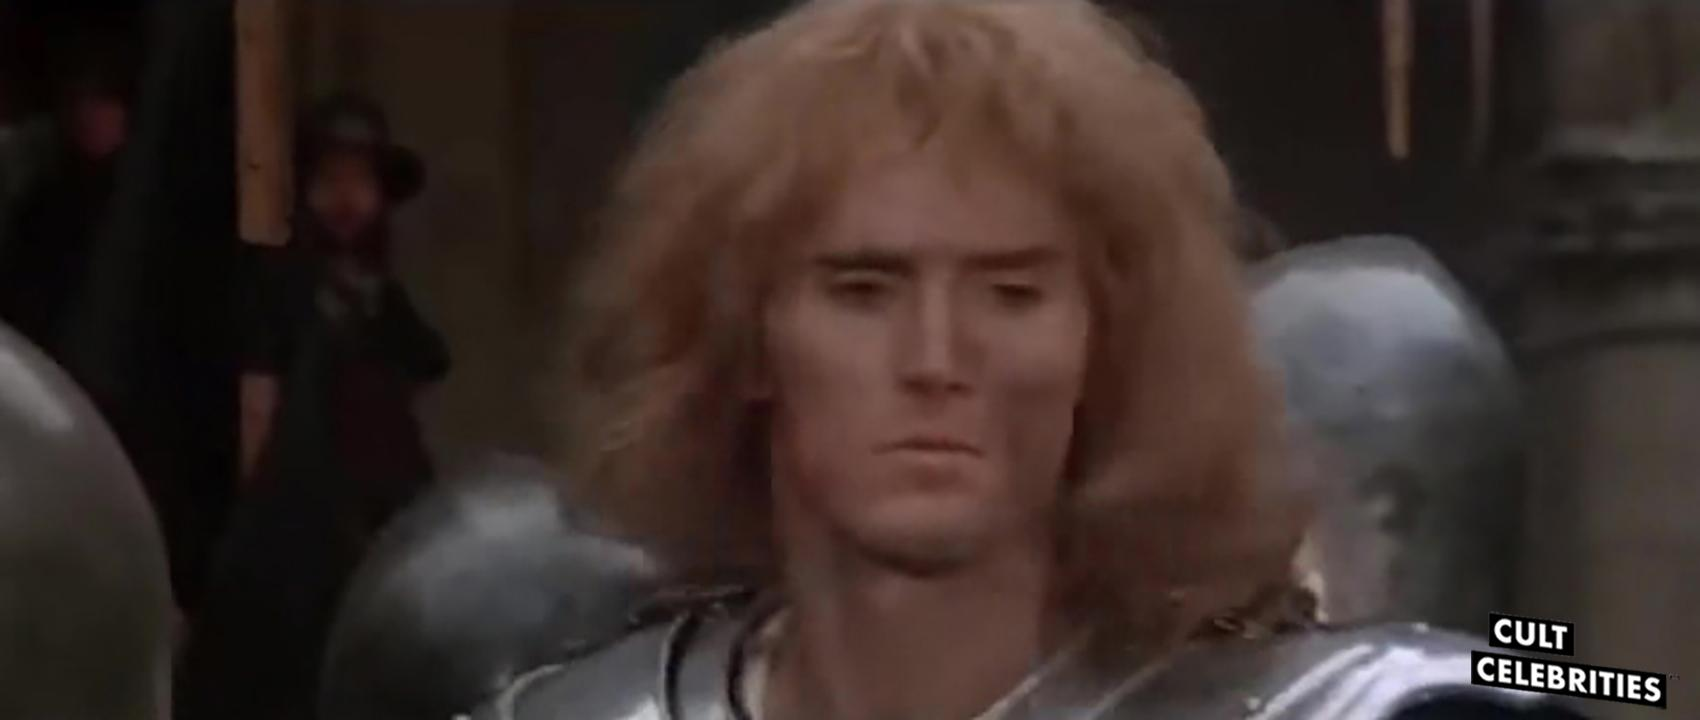 Miles O'Keeffe in Sword of the Valiant (1984)